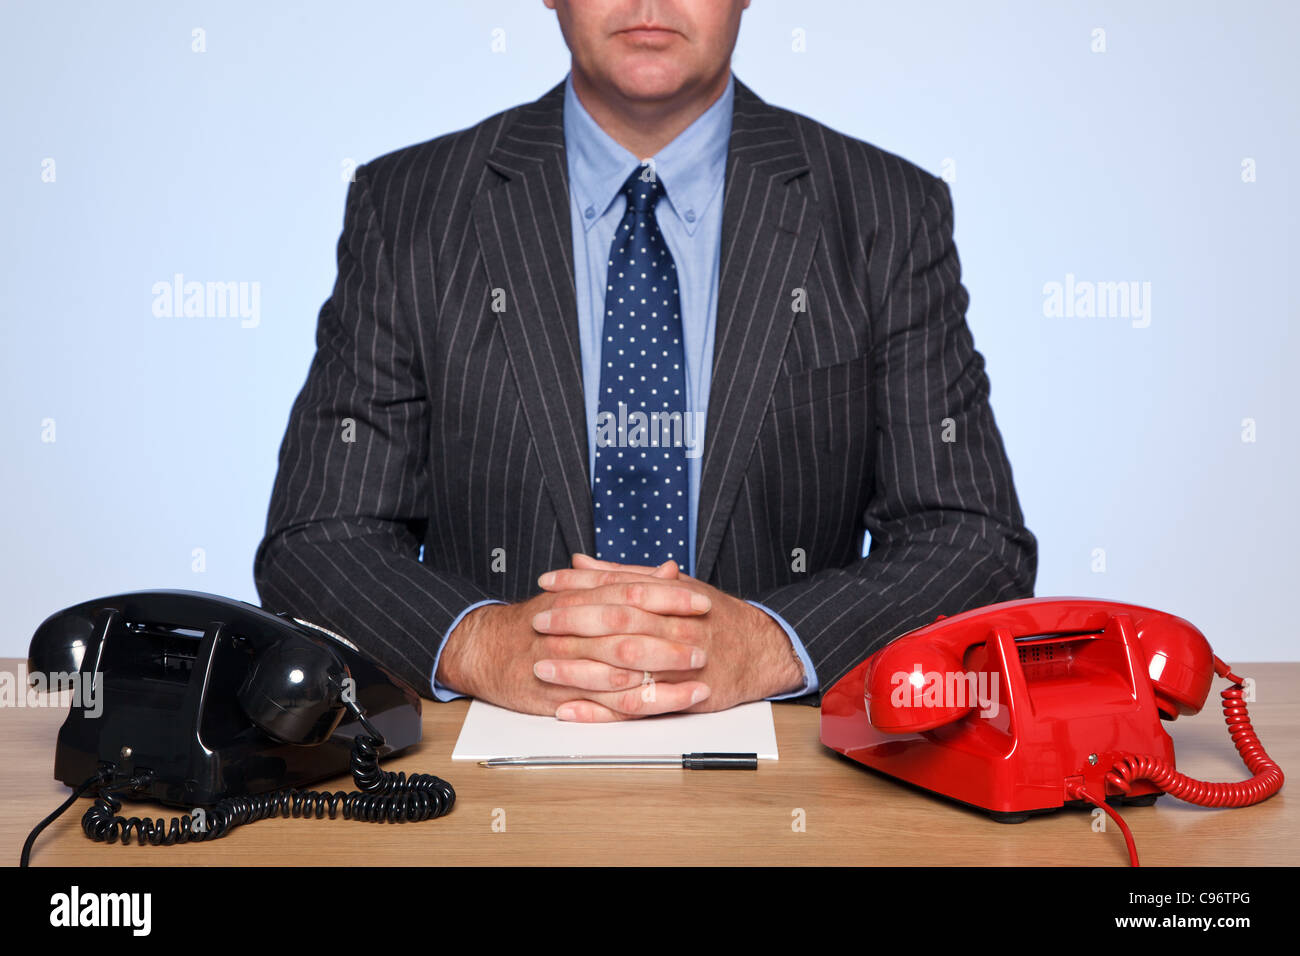 Photo of a businessman sat at a desk with two traditional telephones, one red and one black. - Stock Image